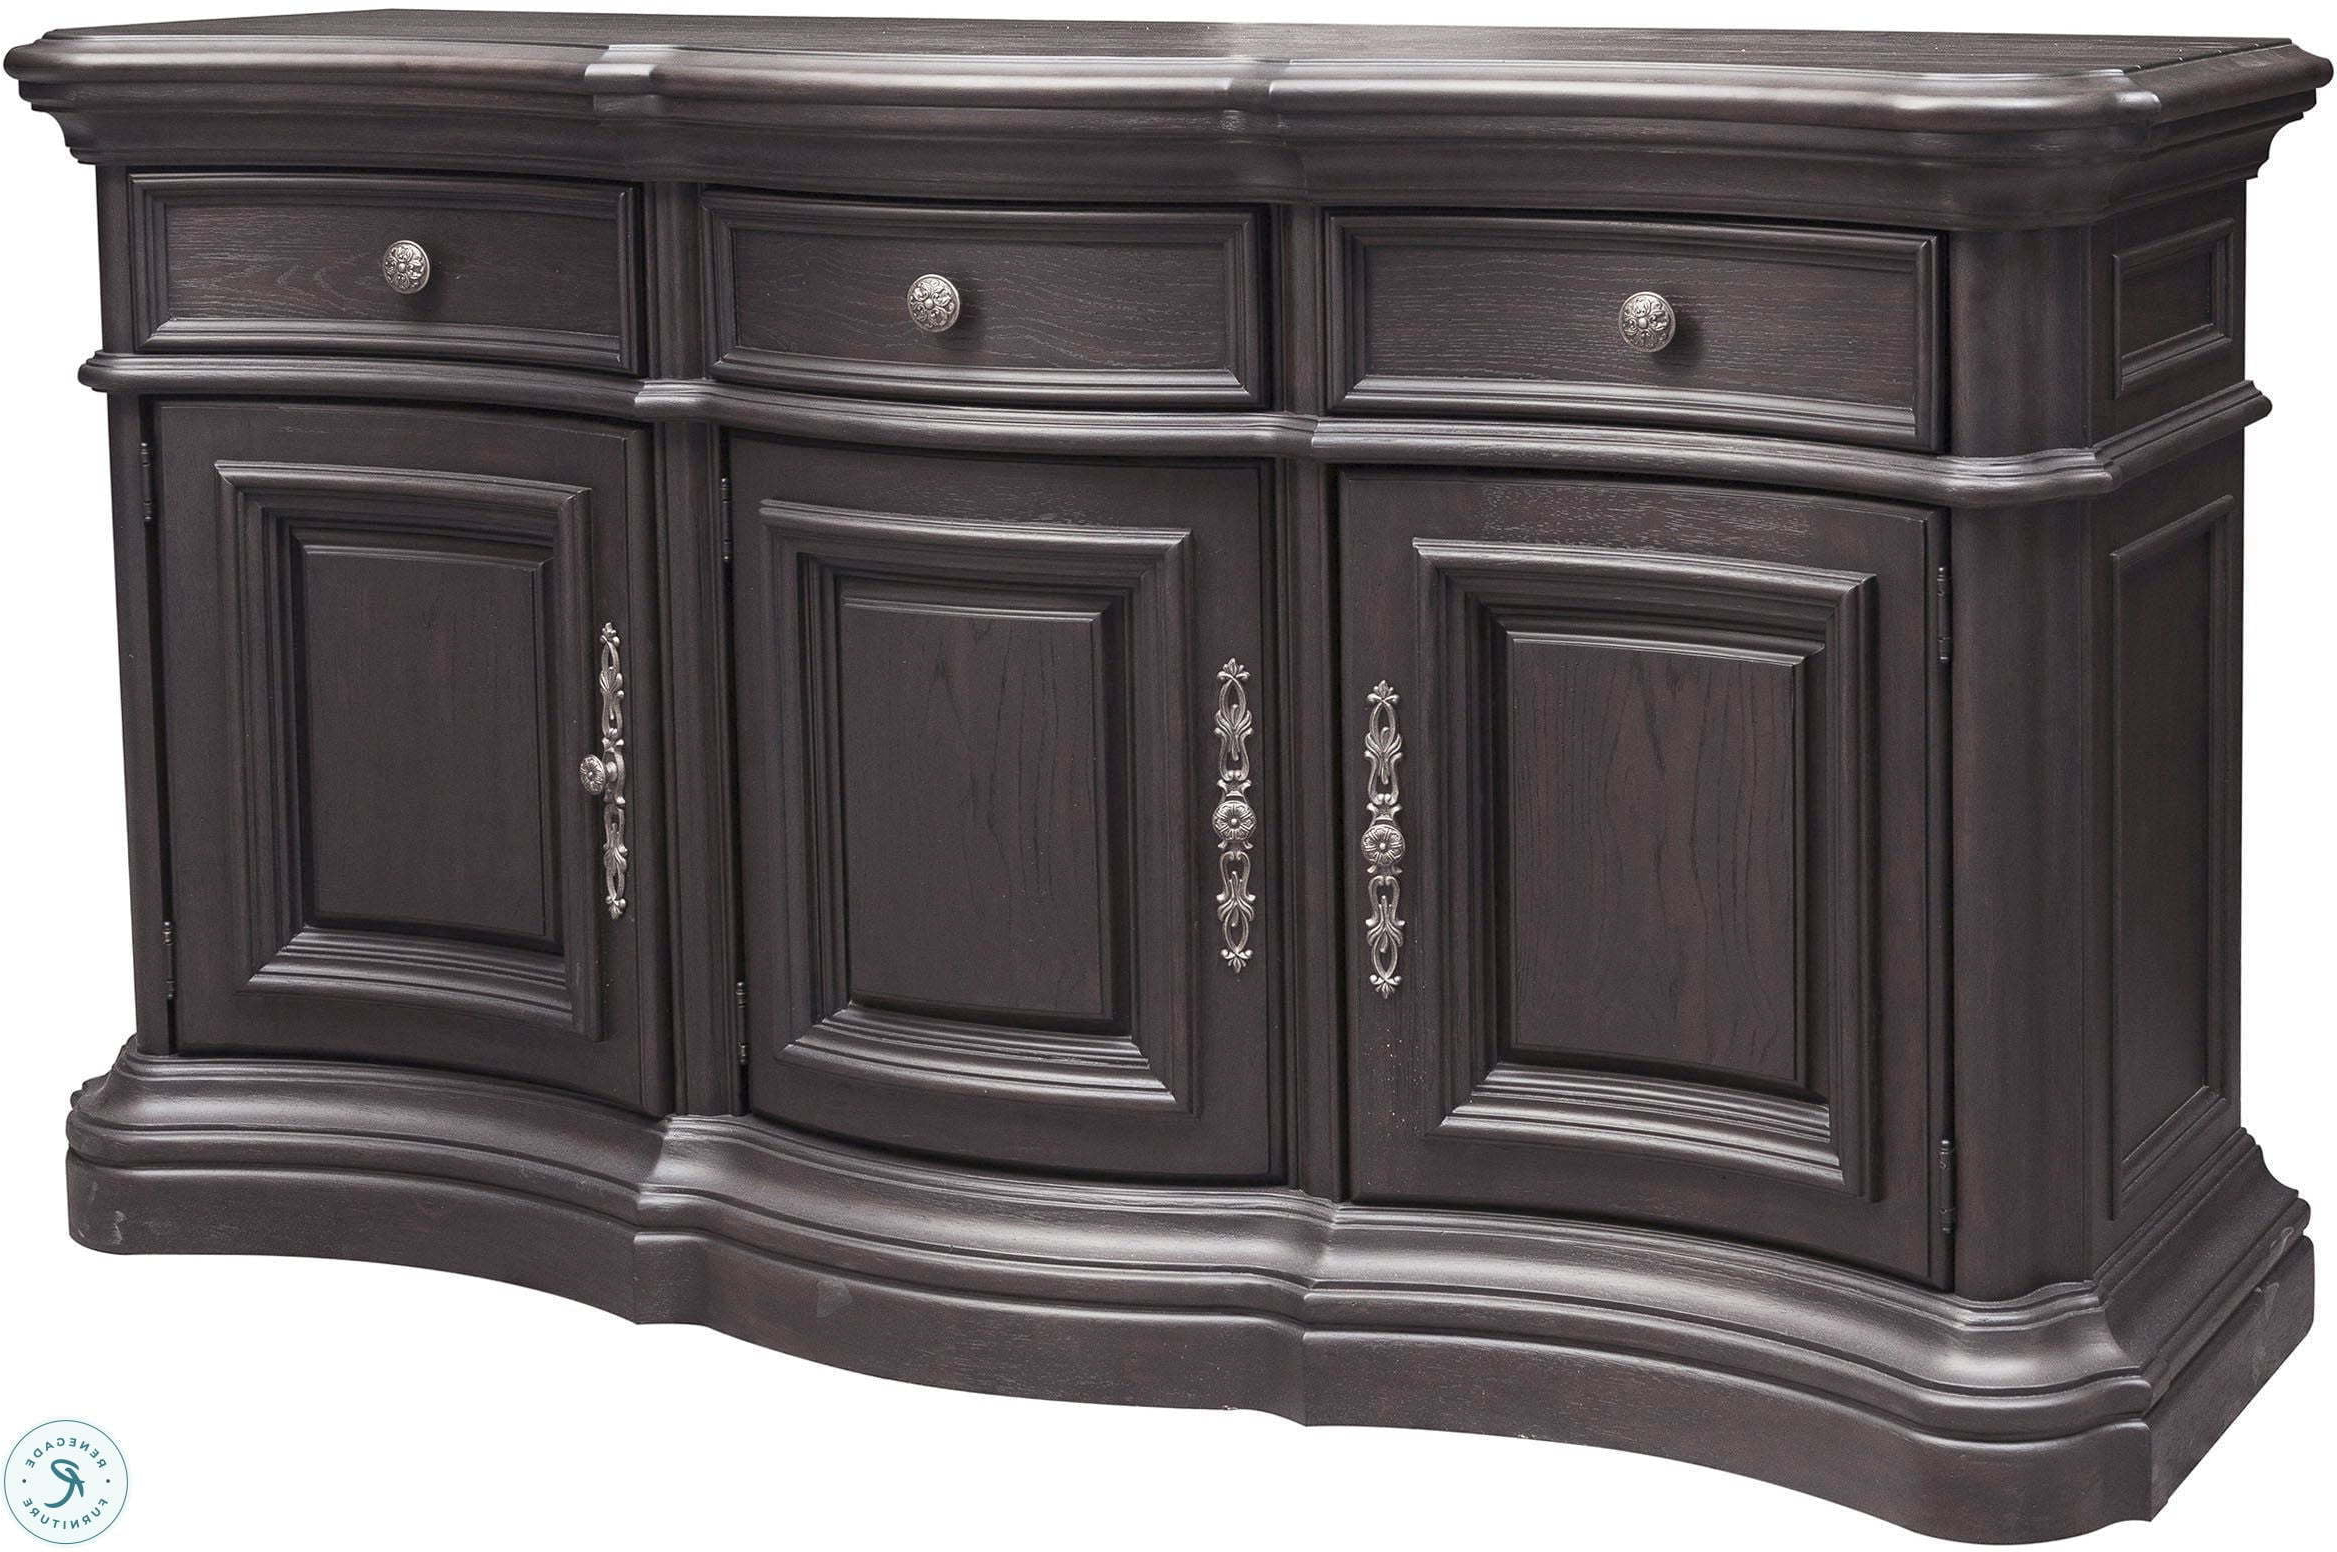 Palisade Distressed Dark Brown Sideboard From Pulaski Pertaining To Most Up To Date Palisade Sideboards (View 11 of 20)